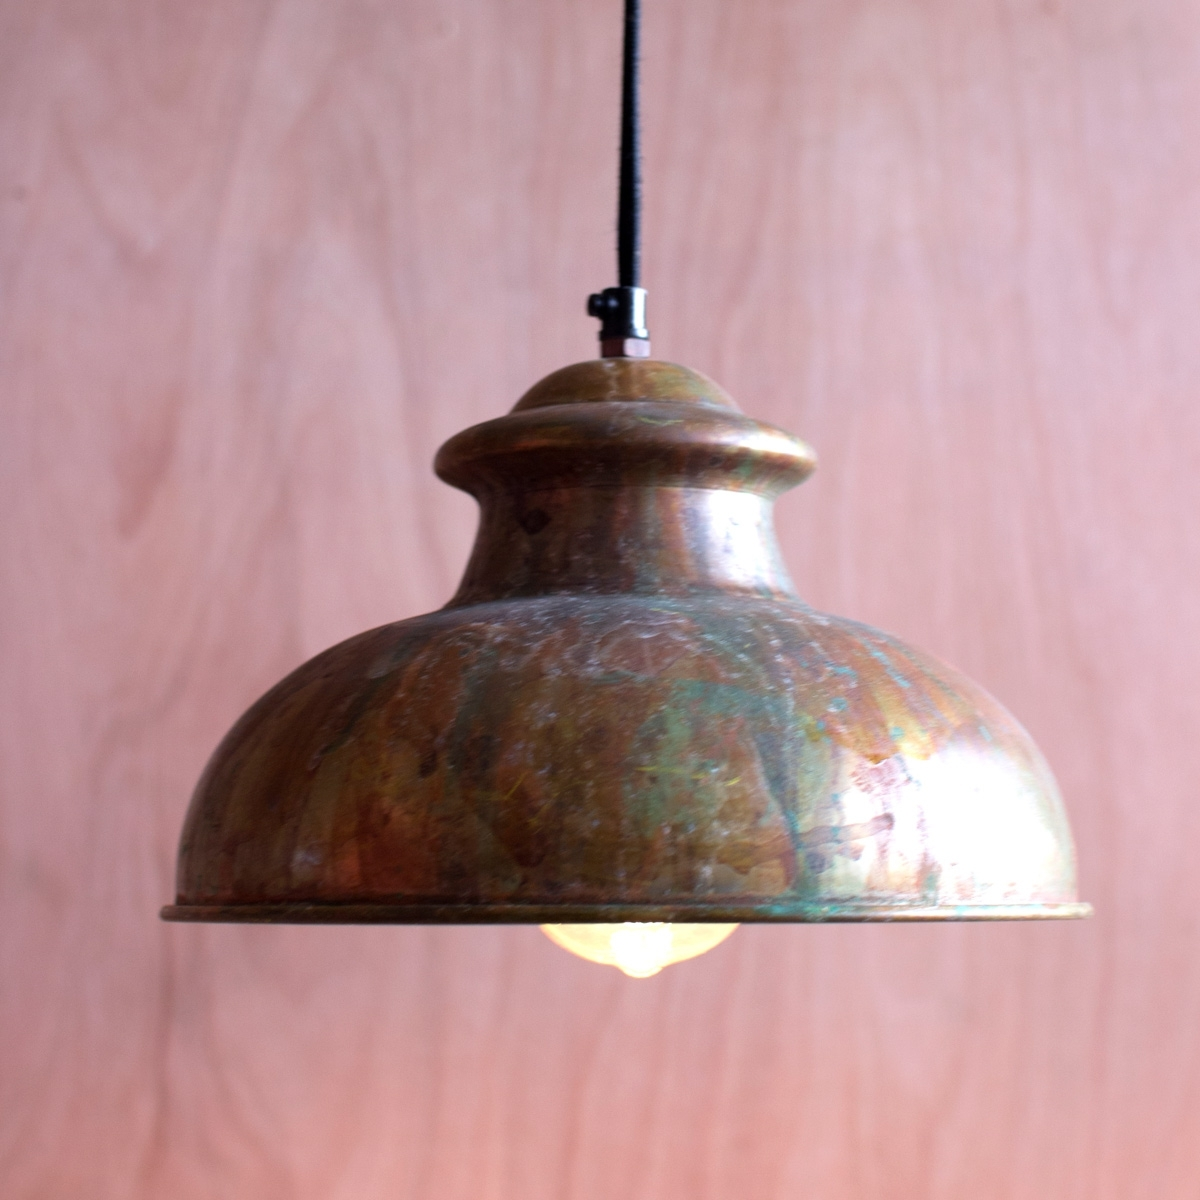 Rustic Outdoor Hanging Lights Within Most Current Lighting : Best Outdoor Hanging Lanterns Ideas On Pinterest Candle (View 3 of 20)